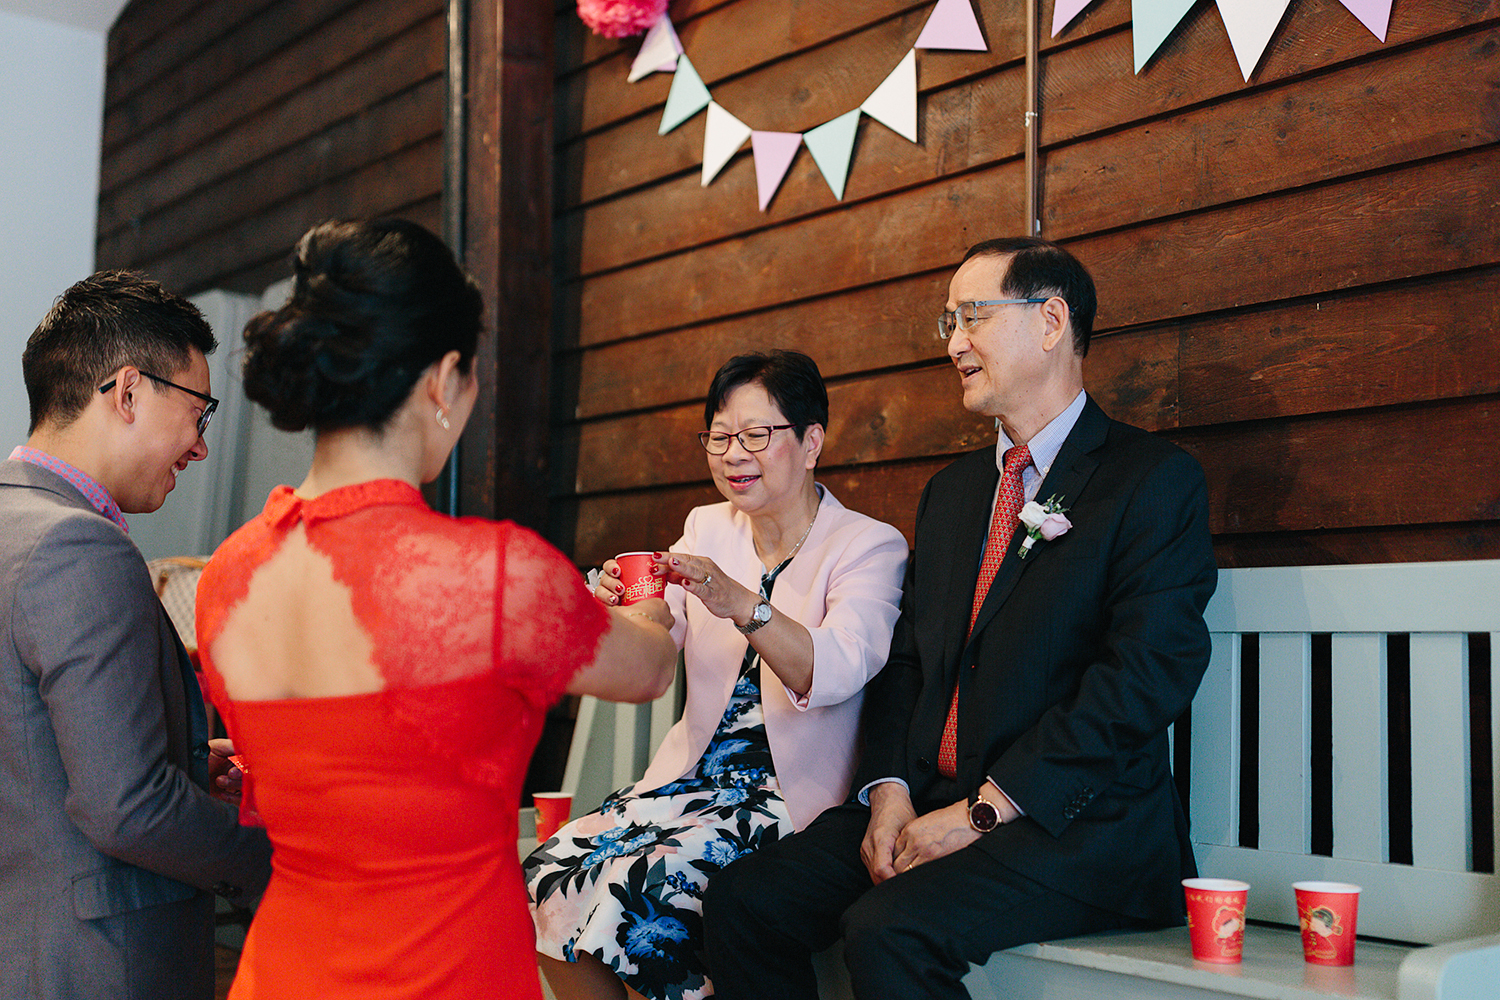 toronto-wedding-photographer-high-park-colborne-lodge-intimate-small-elopement-bride-and-groom-chinese-tea-ceremony-candid-documentary.jpg